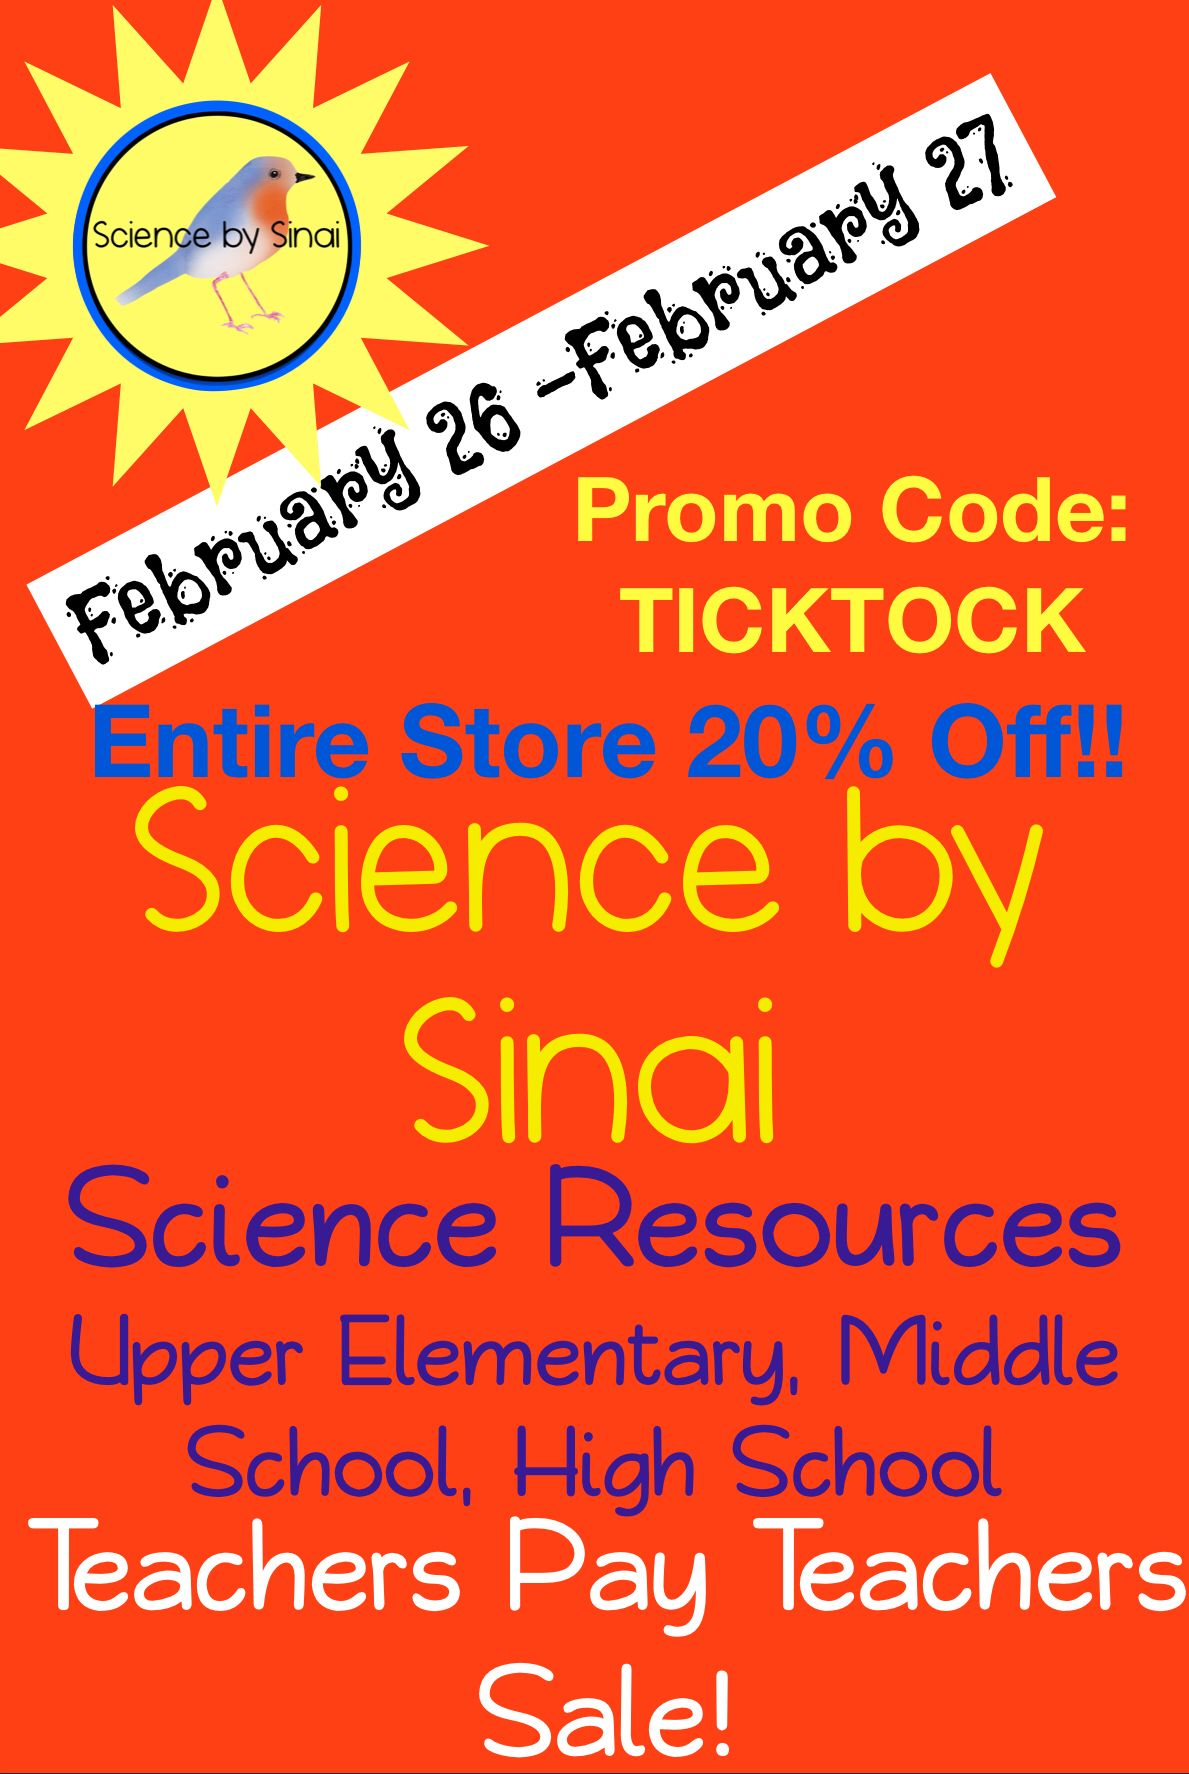 Science Resources Middle School Science Resources High